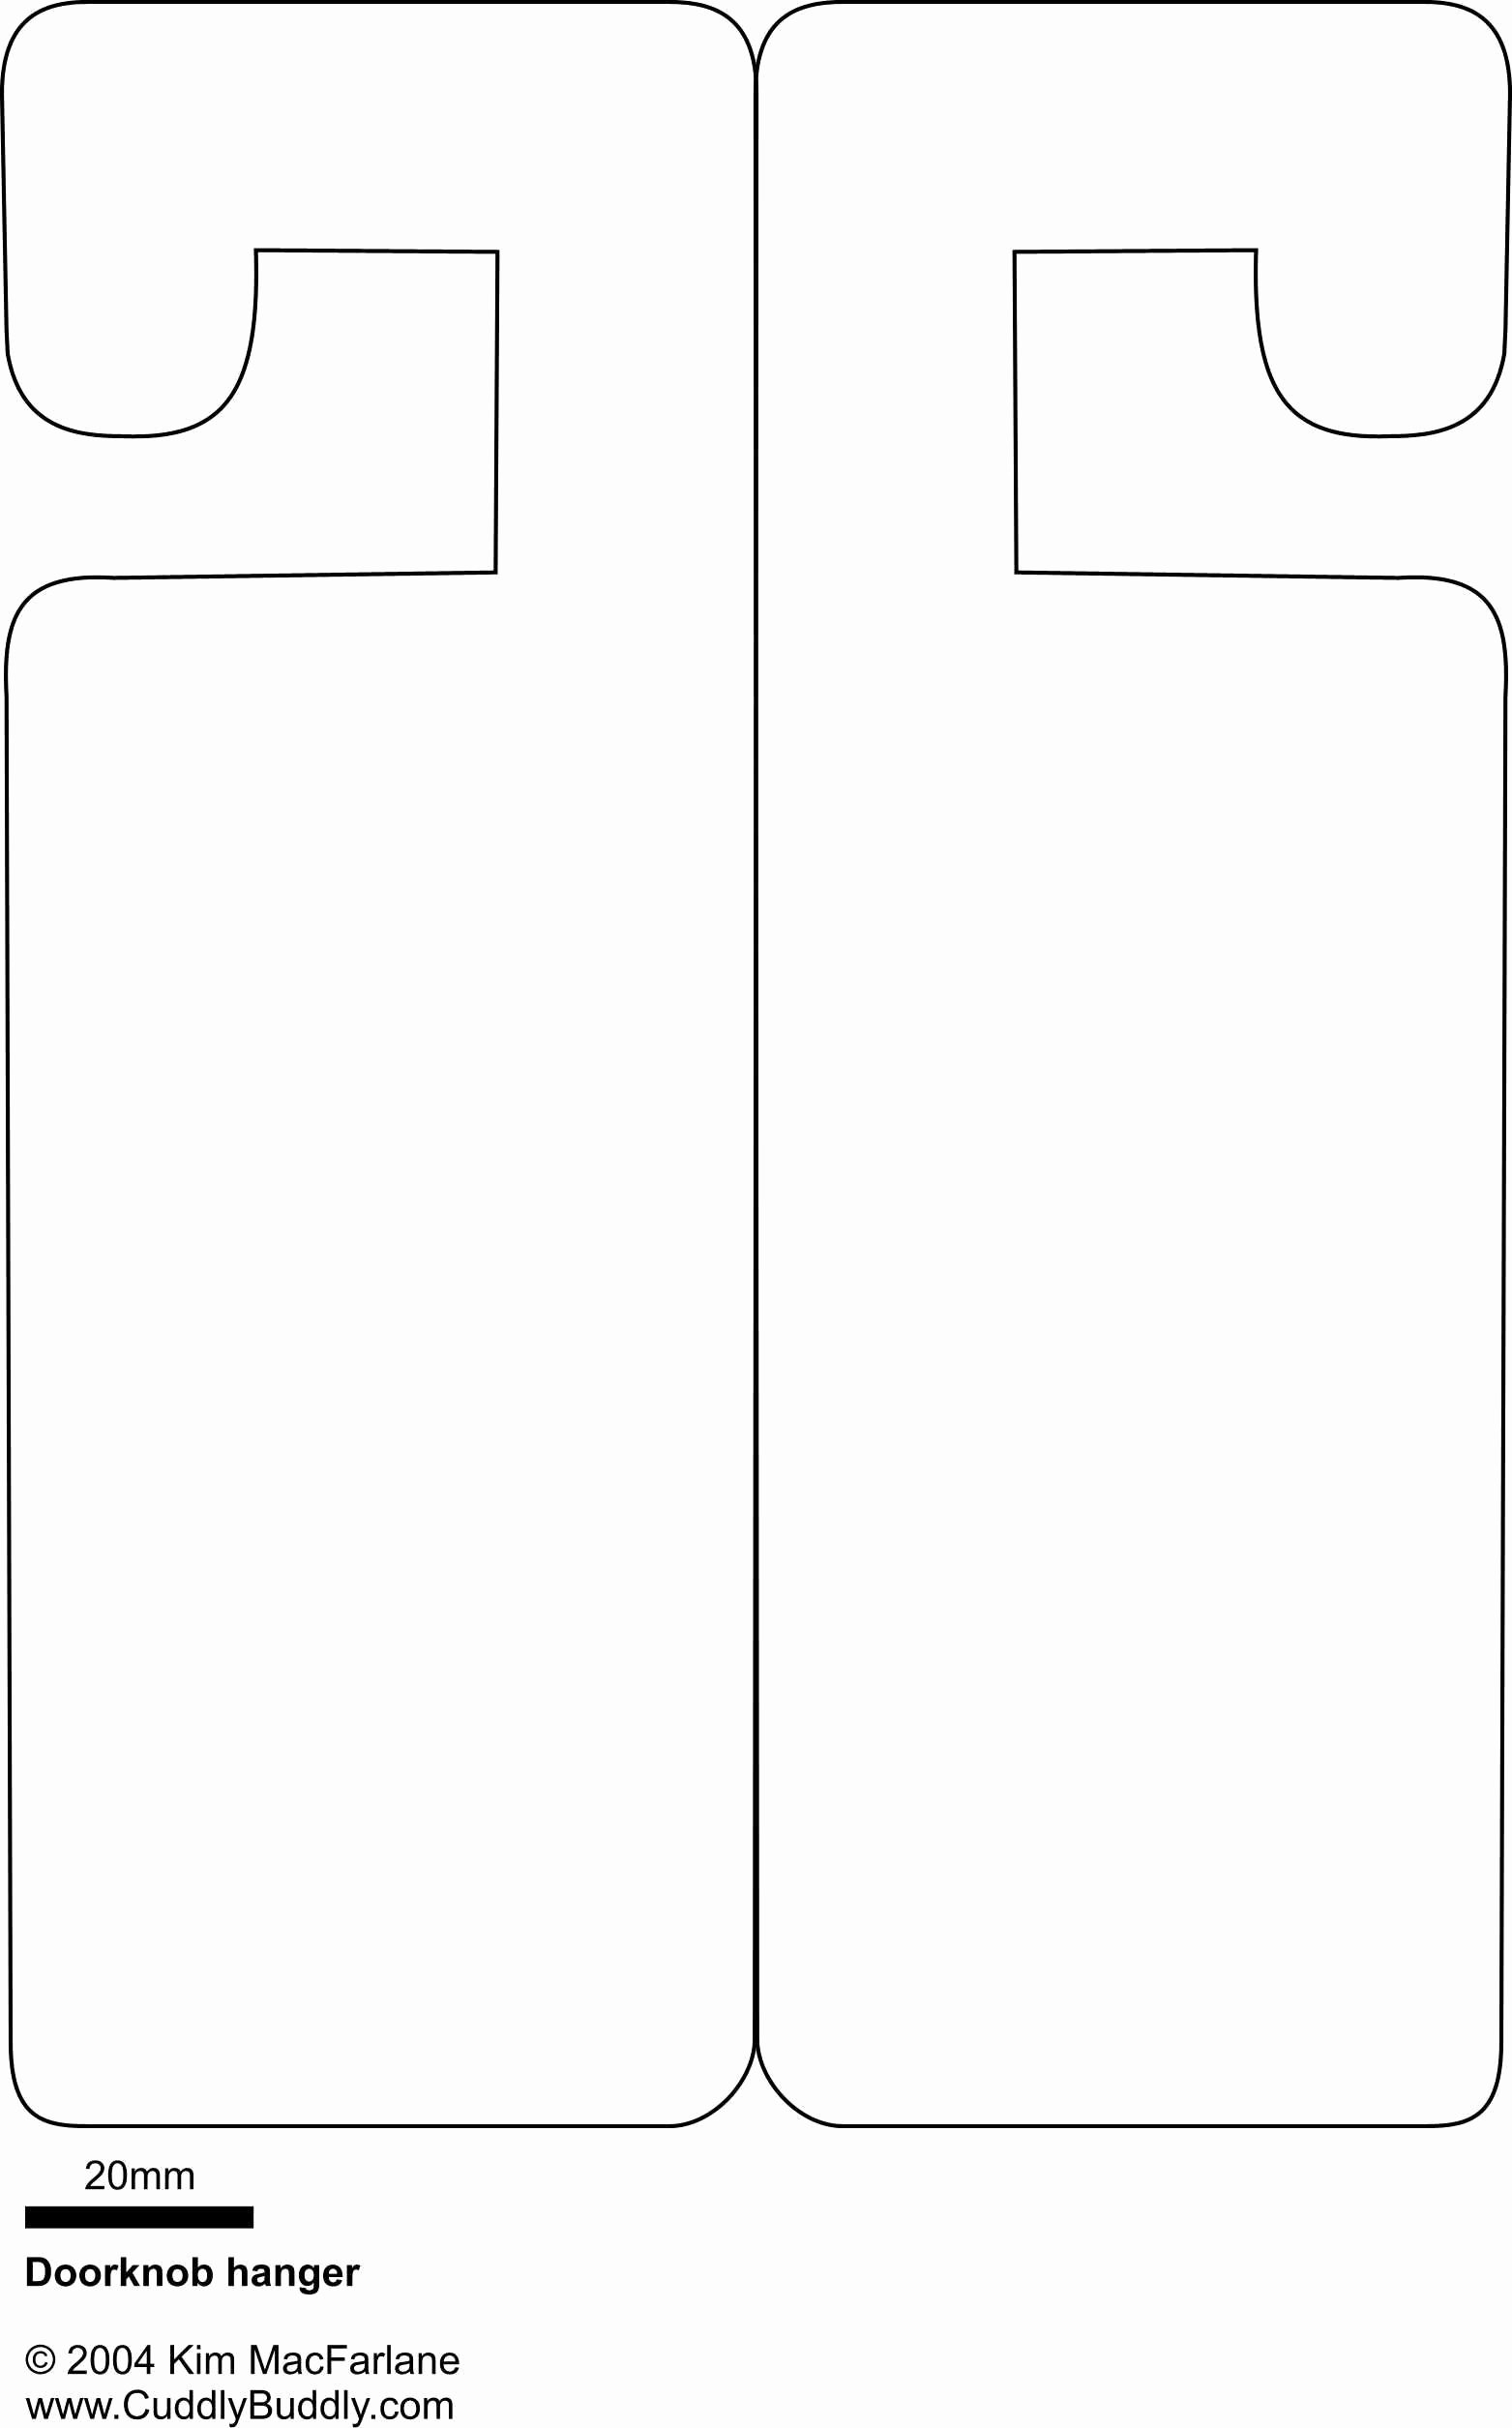 Door Hanger Template Publisher Beautiful Doorknob Hanger Template something to Occupy the Kids On